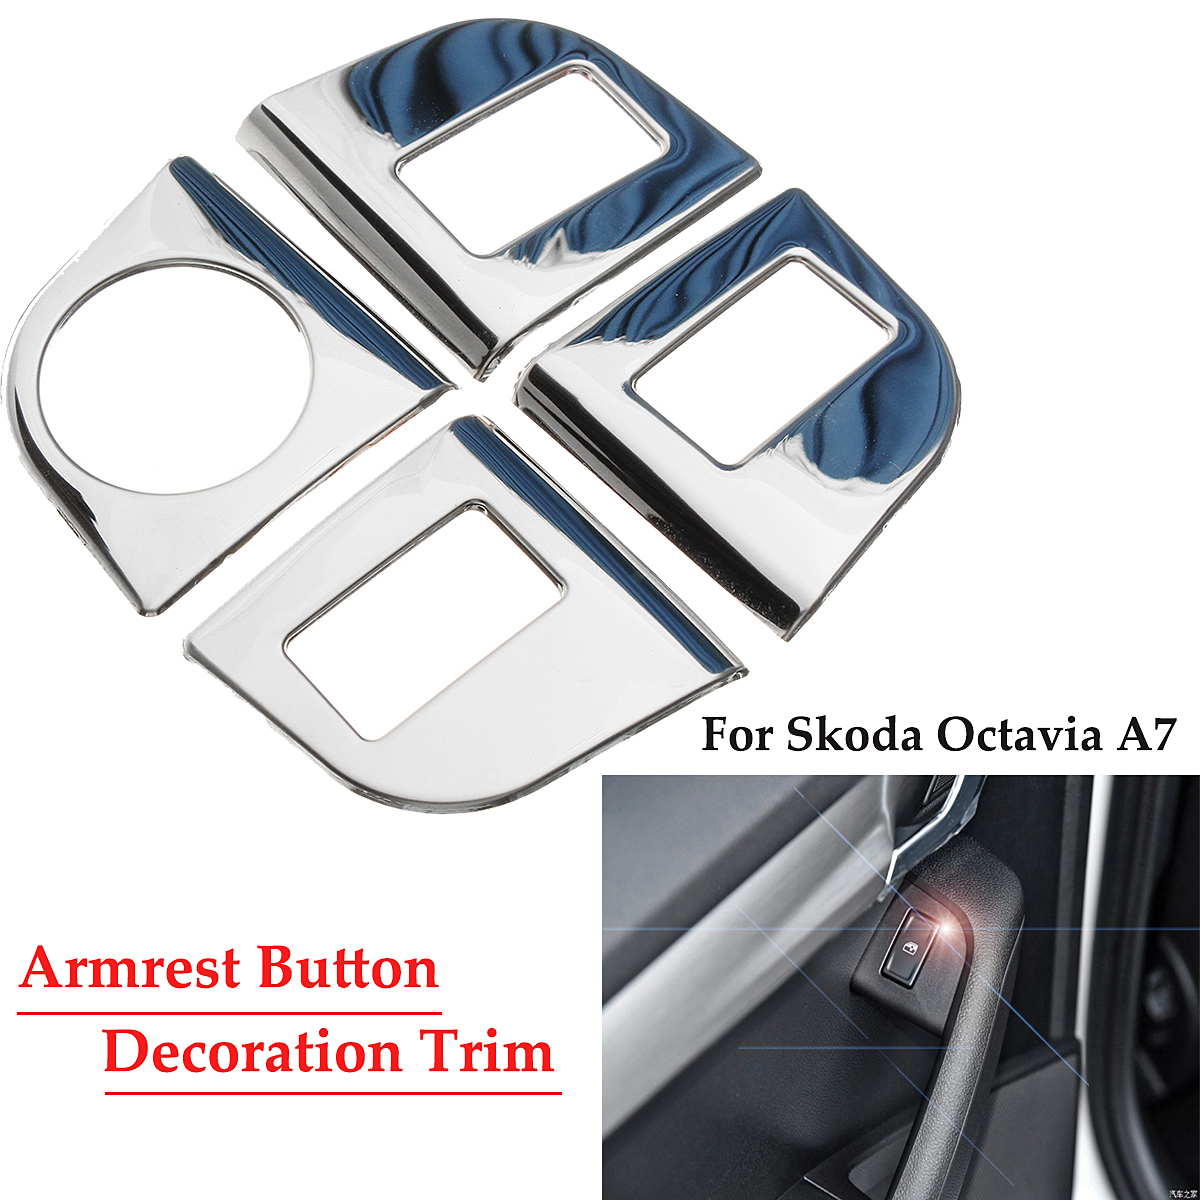 Car Armrest Button Decoration Sticker Stainless Steel Cover Trim Auto for Skoda Octavia A7 Car Styling Auto Accessories Stickers 2 5m car rubber carbon stickers for skoda fabia octavia front lip bumper decoration for vw auto exterior stickers for toyota